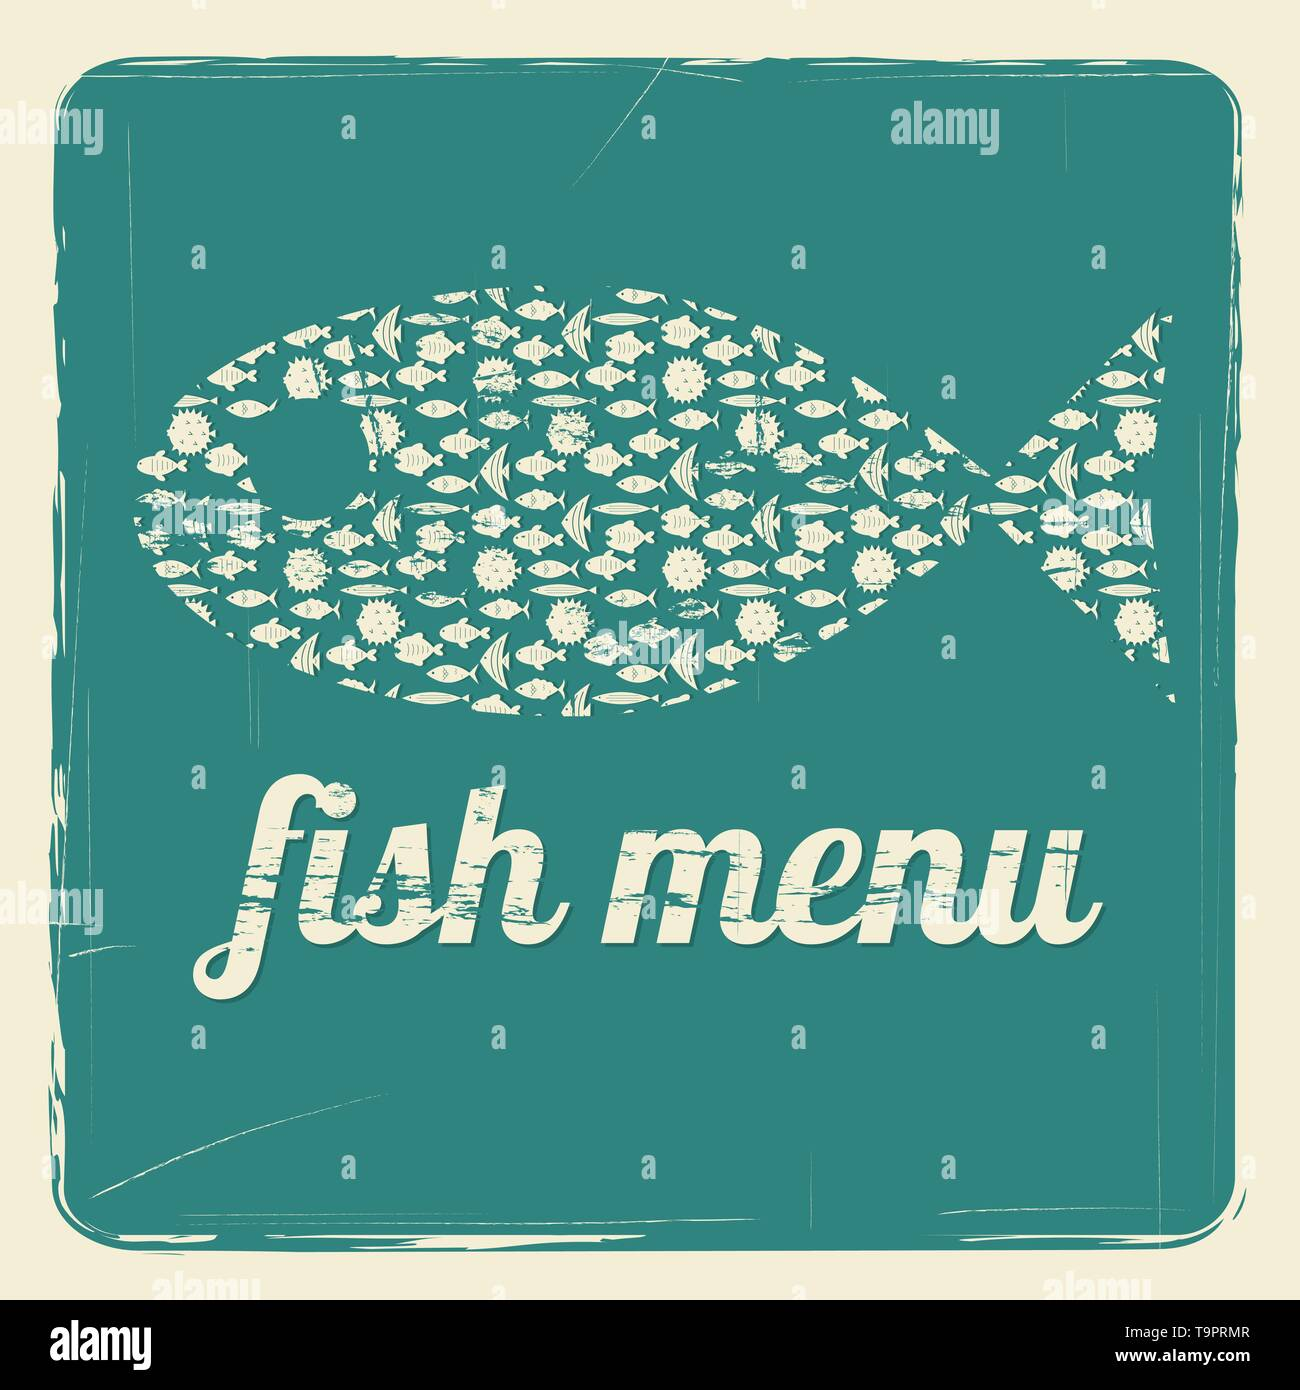 vector template for fish menu with retro effect - Stock Image